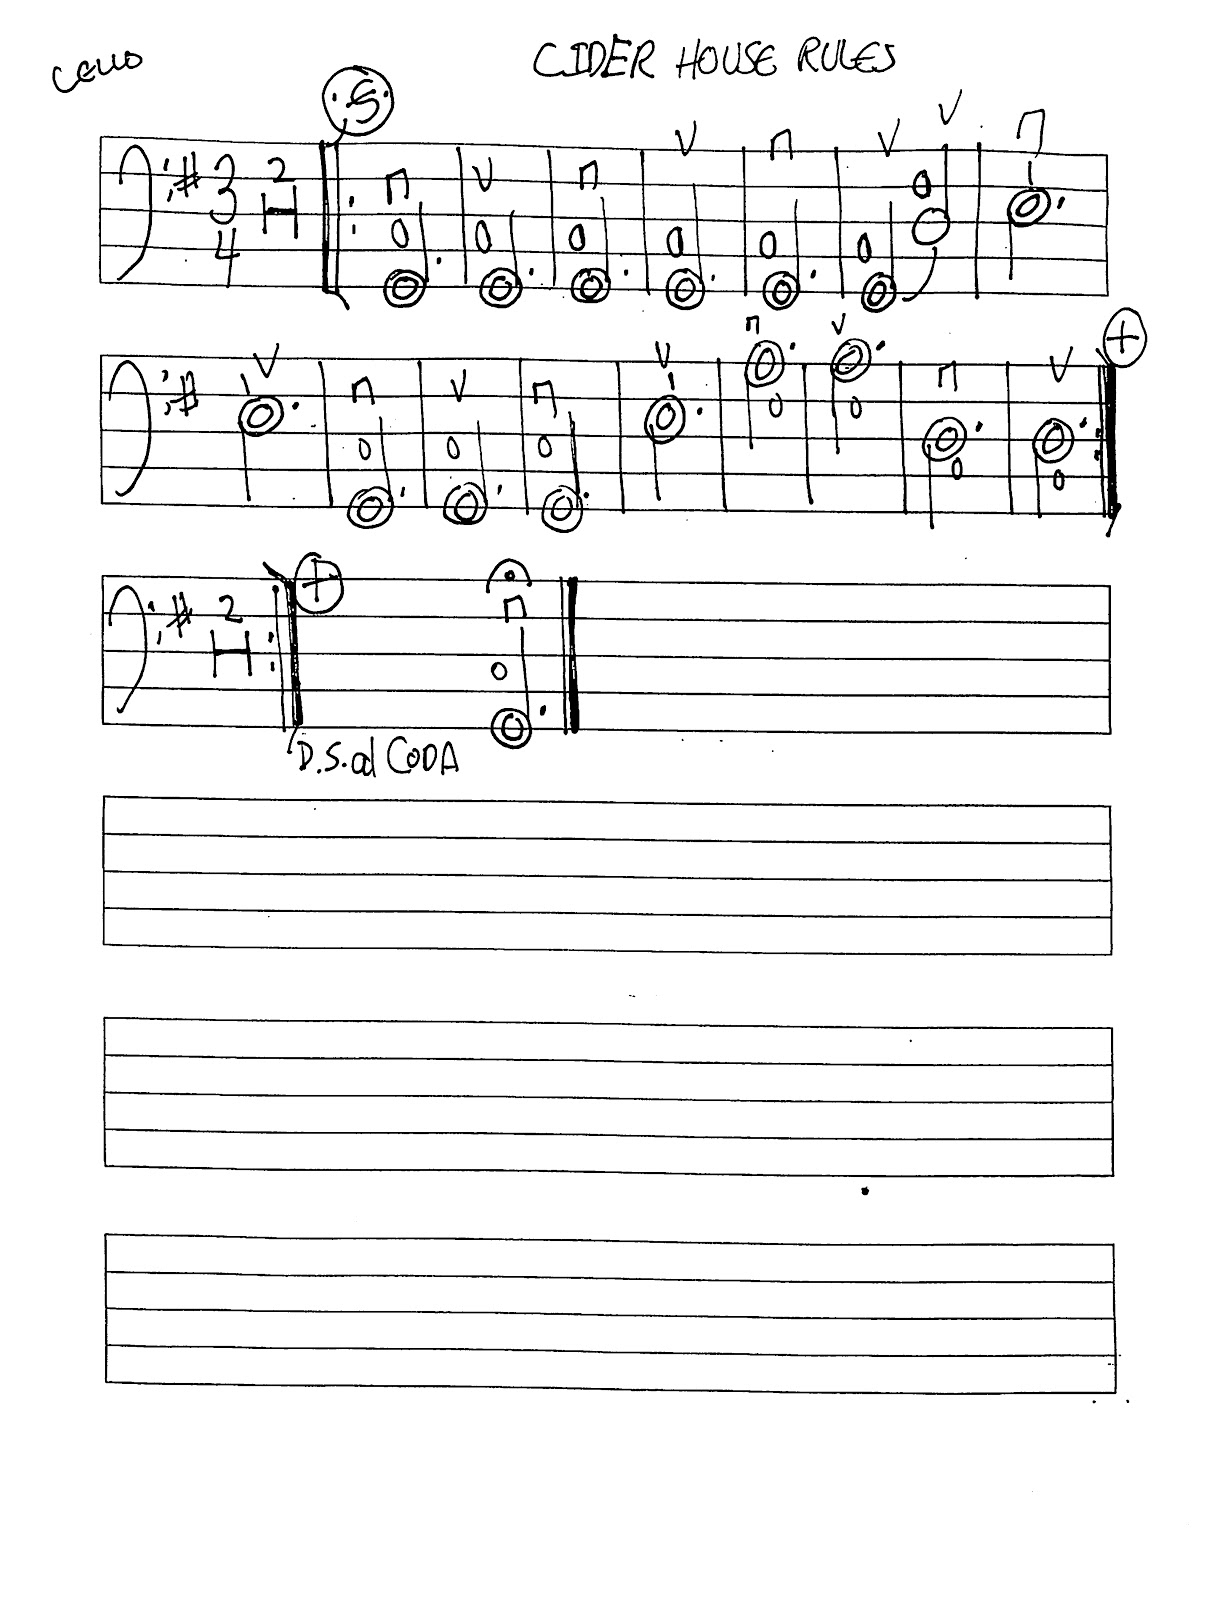 Miss Jacobson S Music Cider House Rules Worksheets